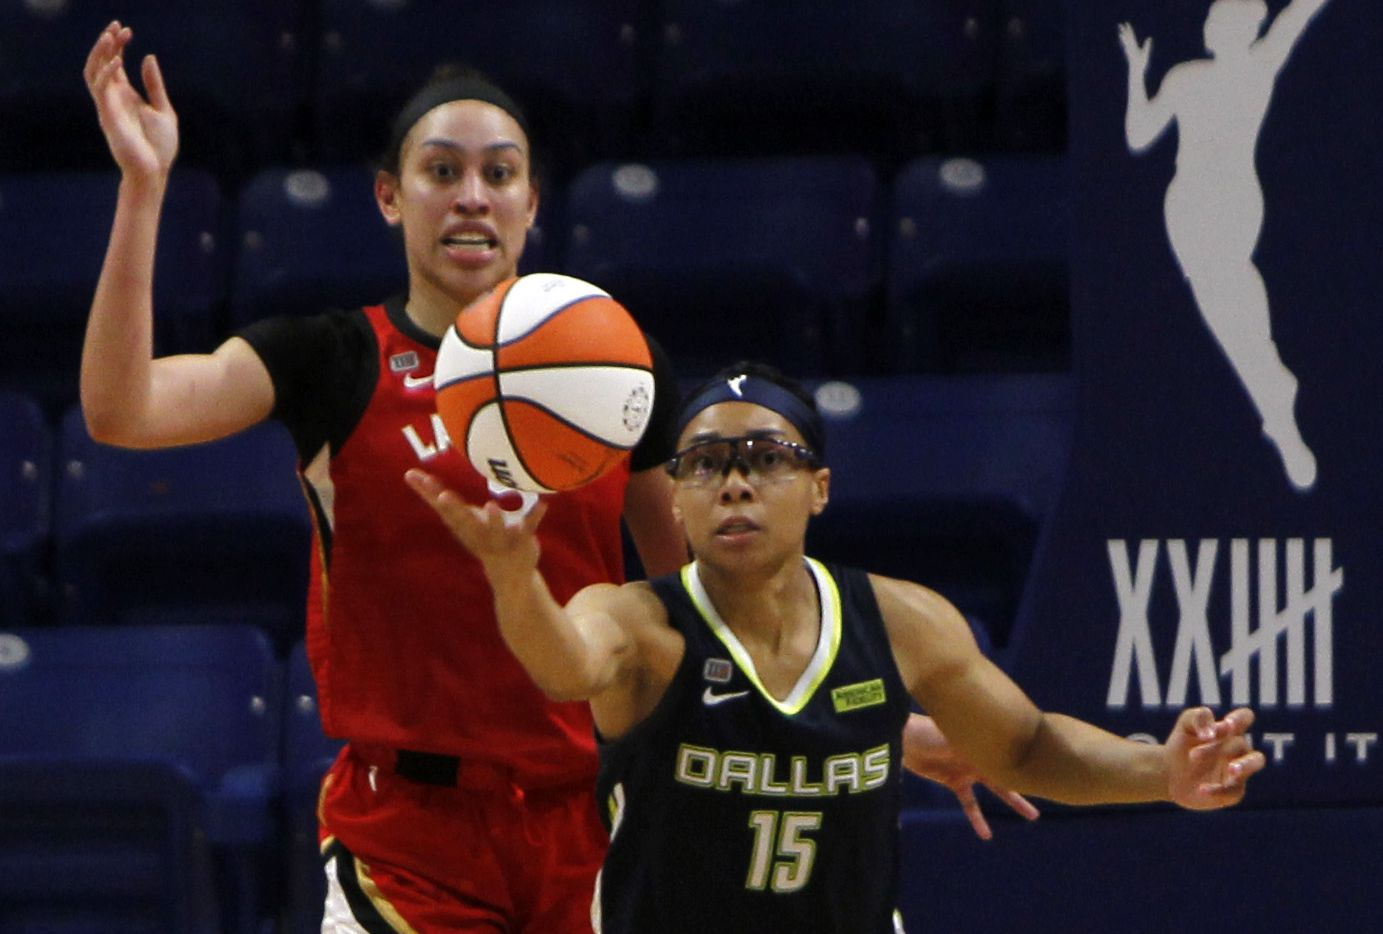 Dallas Wings guard Allisha Gray (15) reaches for a rebound as Las Vegas forward Dearica Hamby (5) looks on during first half action. Las Vegas defeated Dallas 95-79. The two WNBA teams played their game at College Park Center on the campus of UT-Arlington on July 11, 2021.